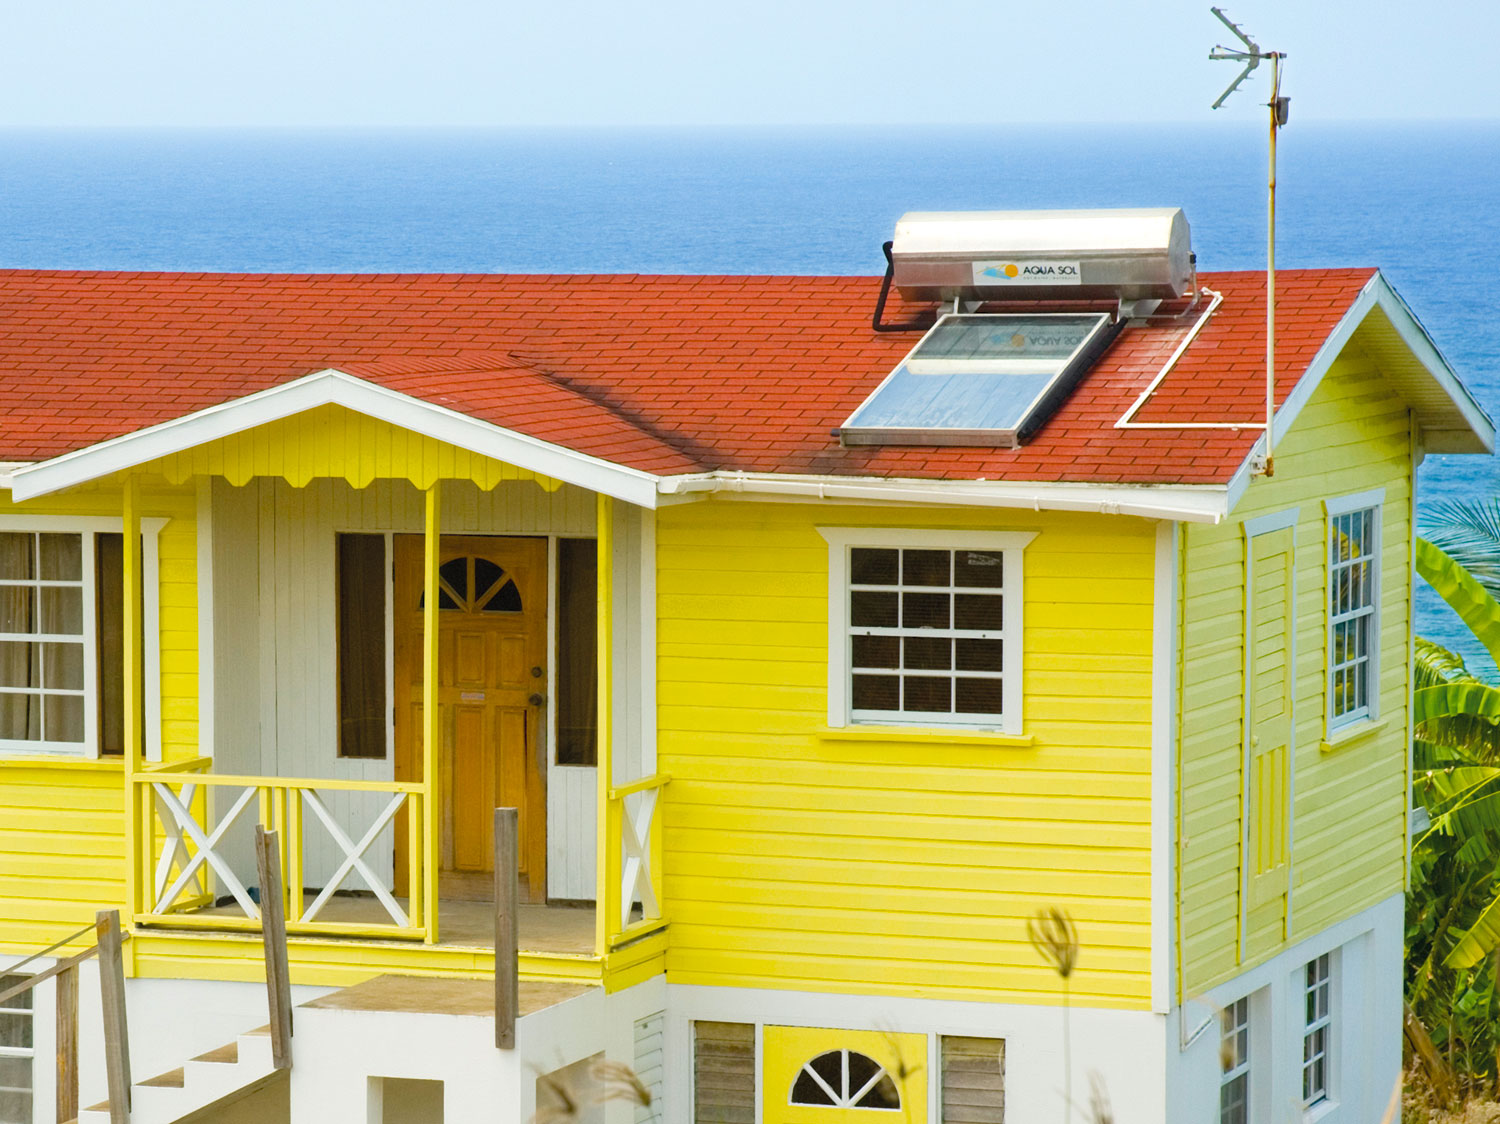 A house with a solar energy panel overlooking the Atlantic Ocean, St Joseph, Barbados. Photograph by Adrian Griffith